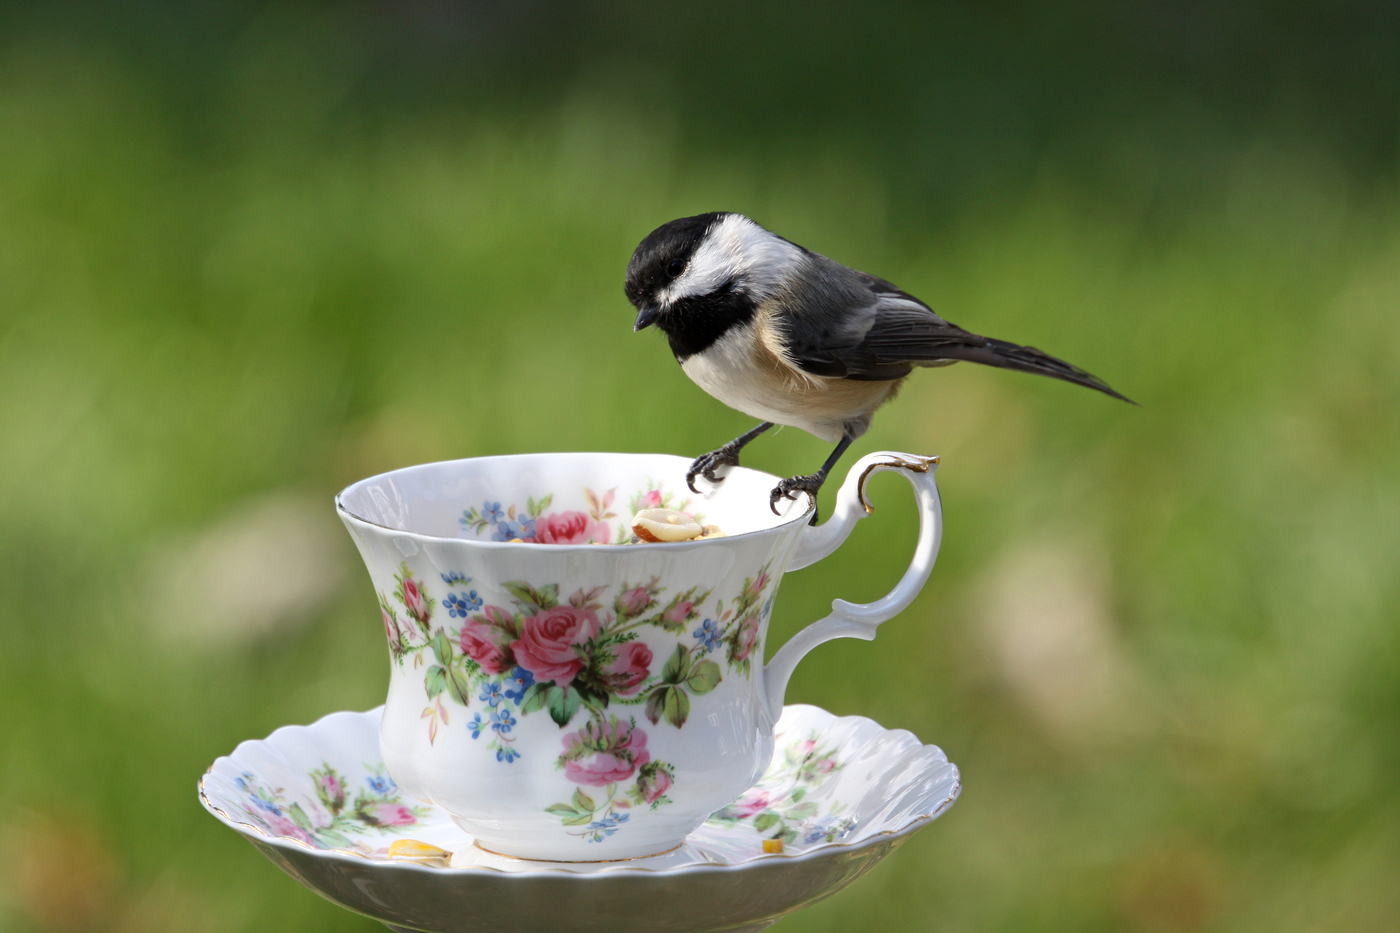 Chickadee at Teacup #15